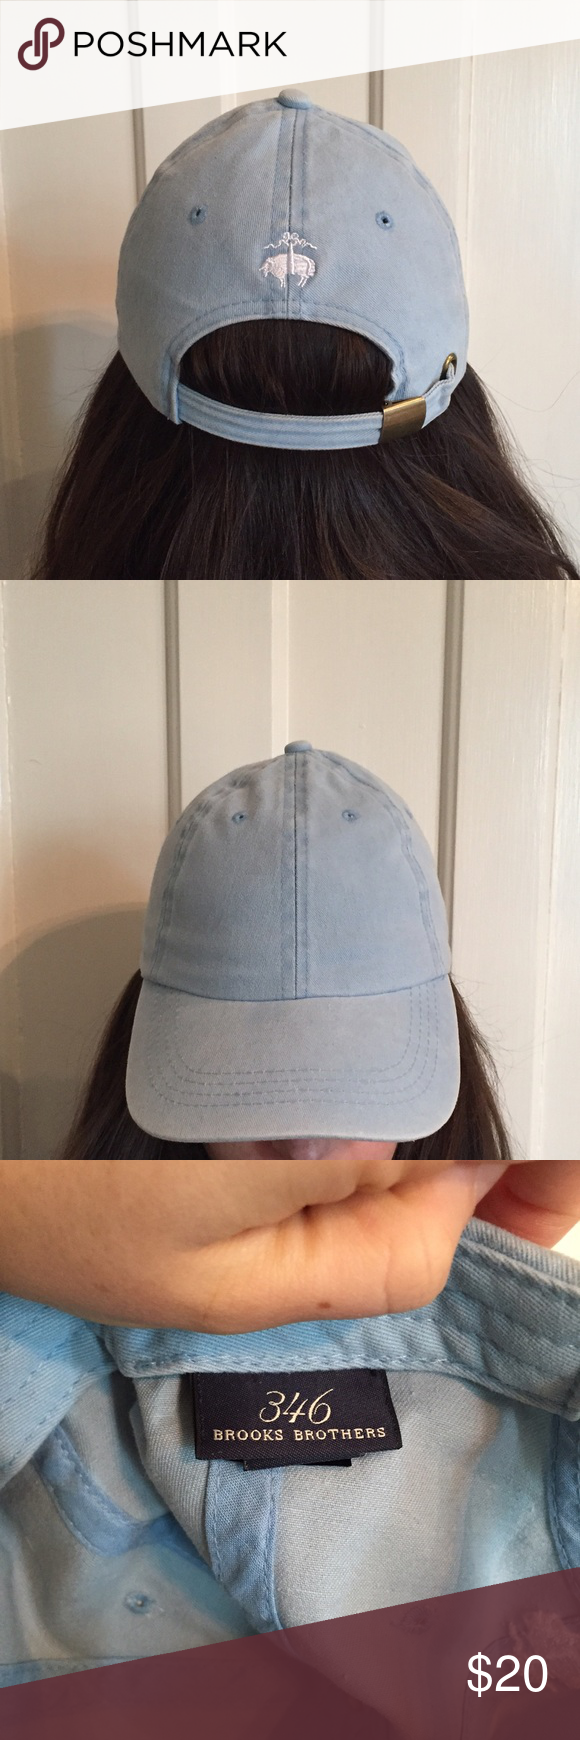 b7ff74dc06ba4 Brooks Brothers Baseball Cap Baby blue Brooks Brothers baseball cap. Super  adorable!!!! Only worn once from my smoke and pet free home!